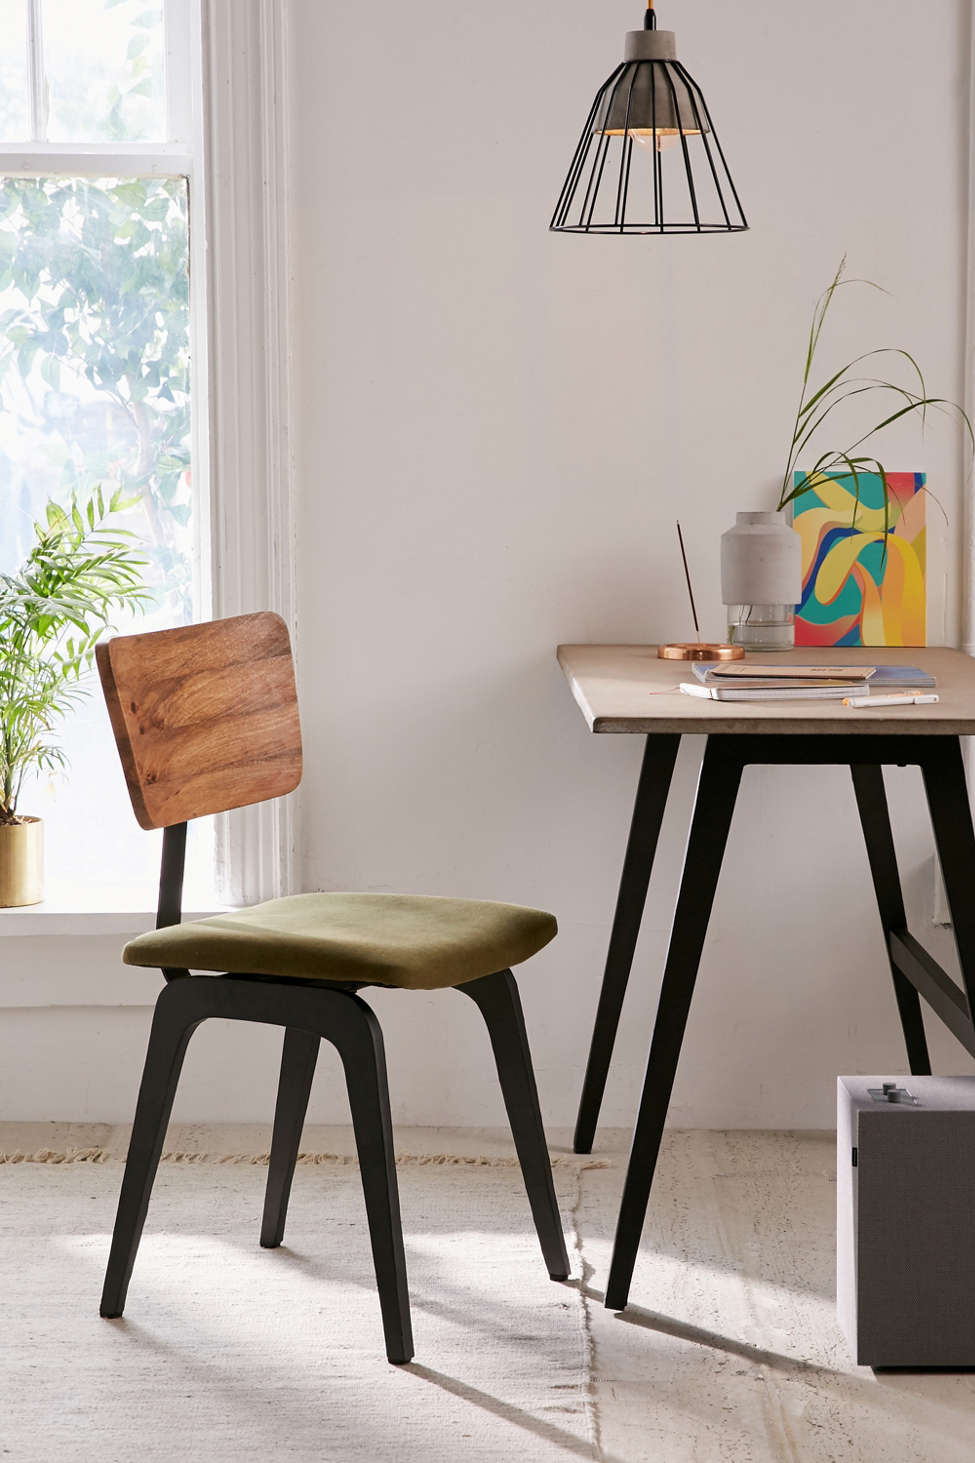 Slide View: 1: Fisher Desk Chair